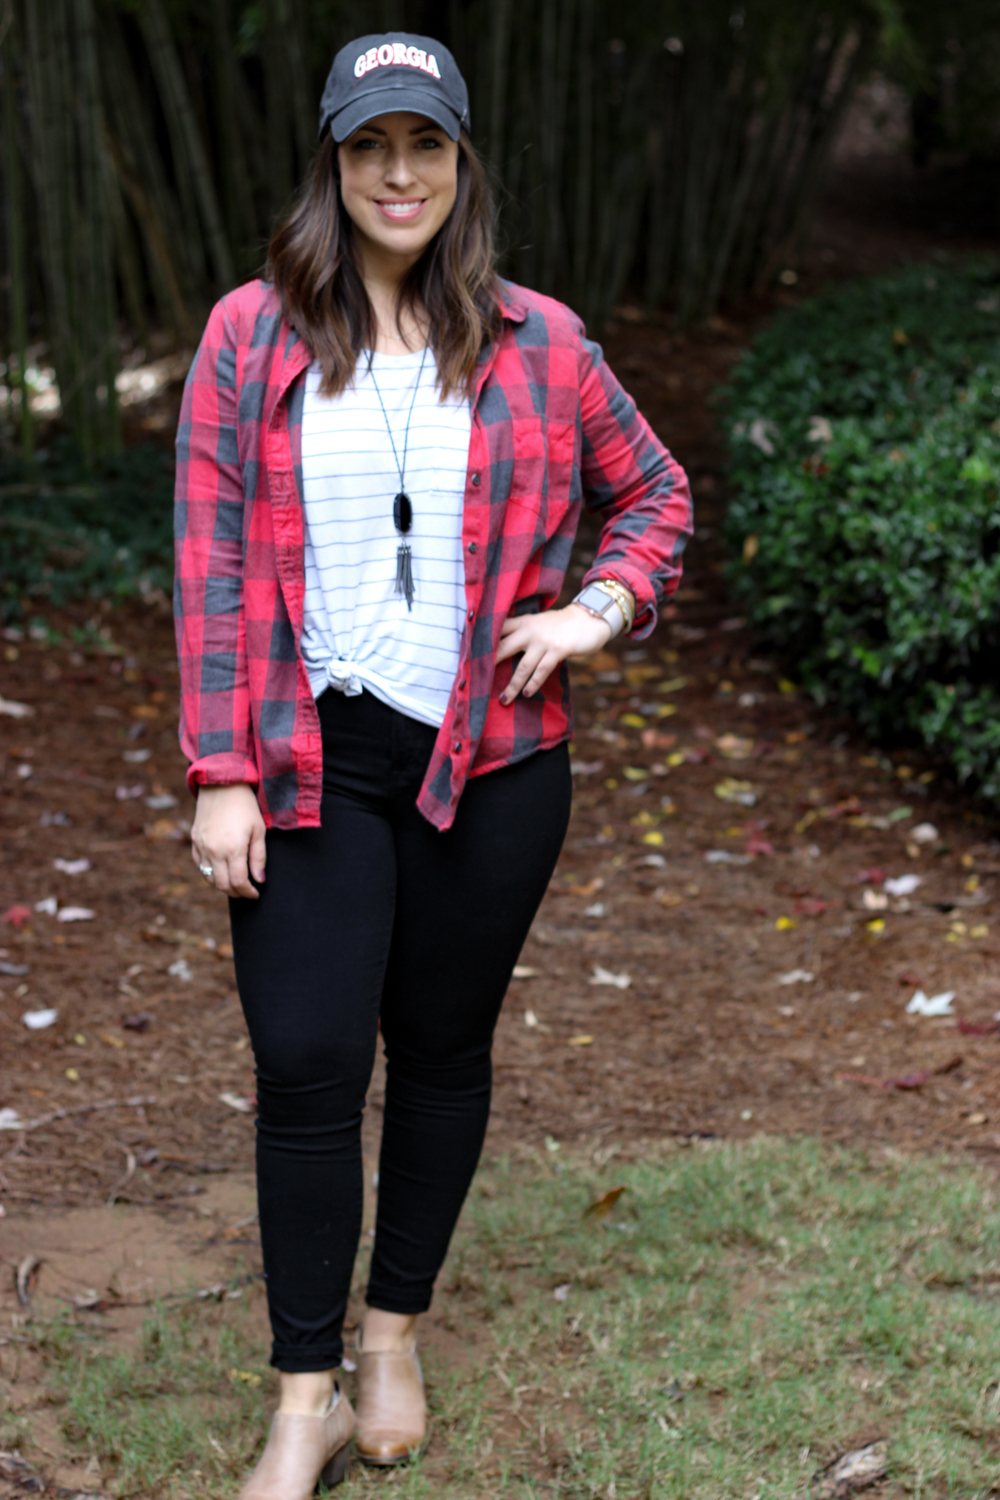 Football Gameday Tailgating Outfit | Just Peachy Blog